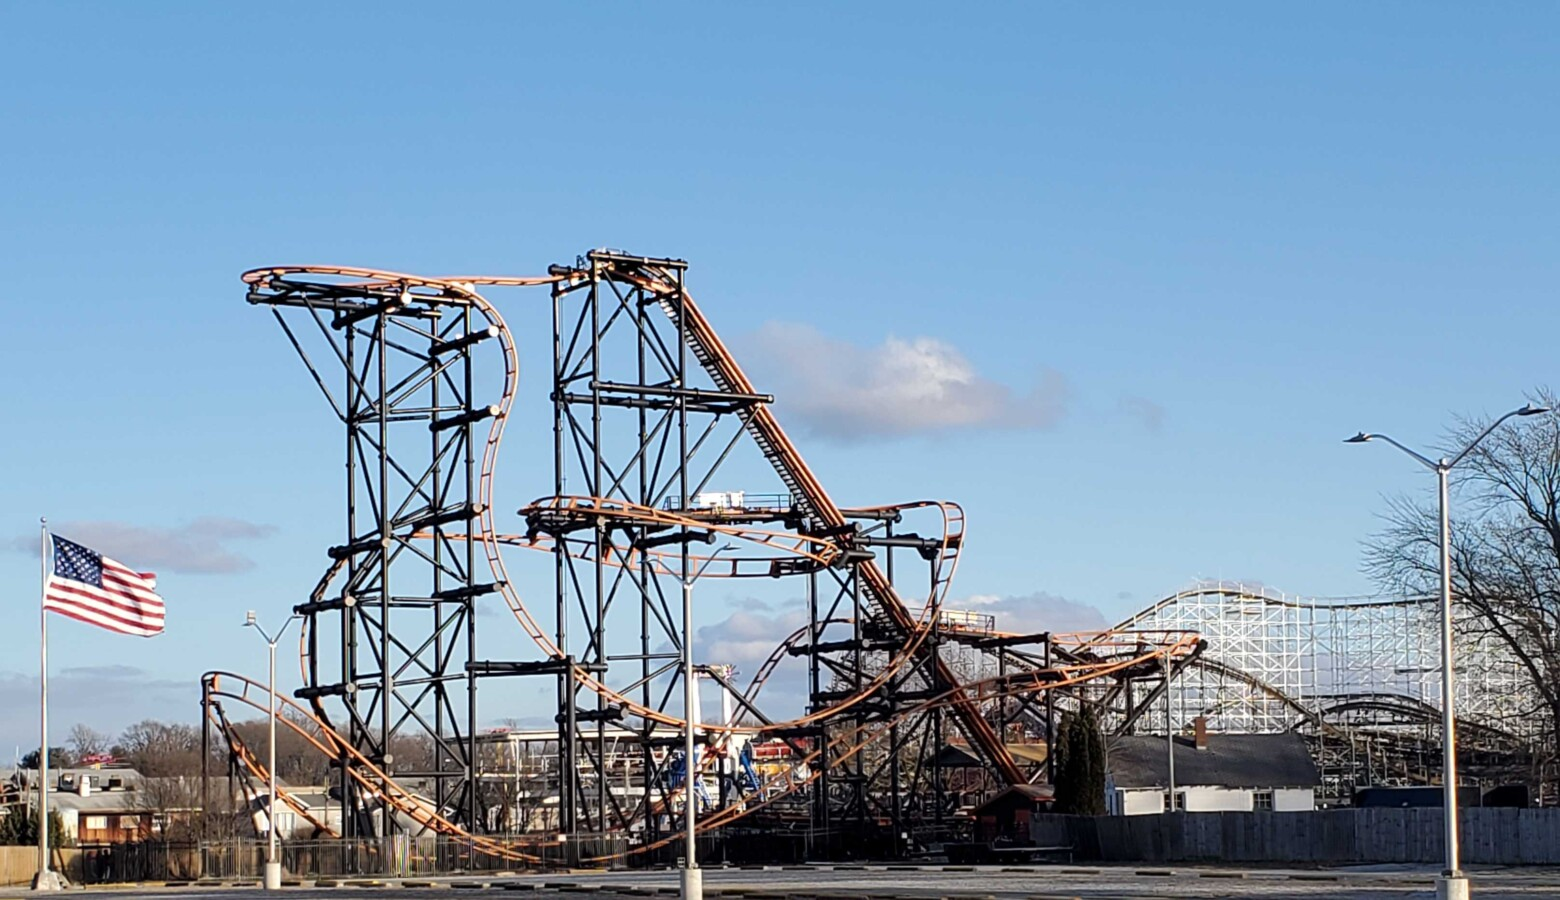 Indiana Beach amusement and water park in Monticello, Indiana, is now closed. (Samantha Horton/IPB News)